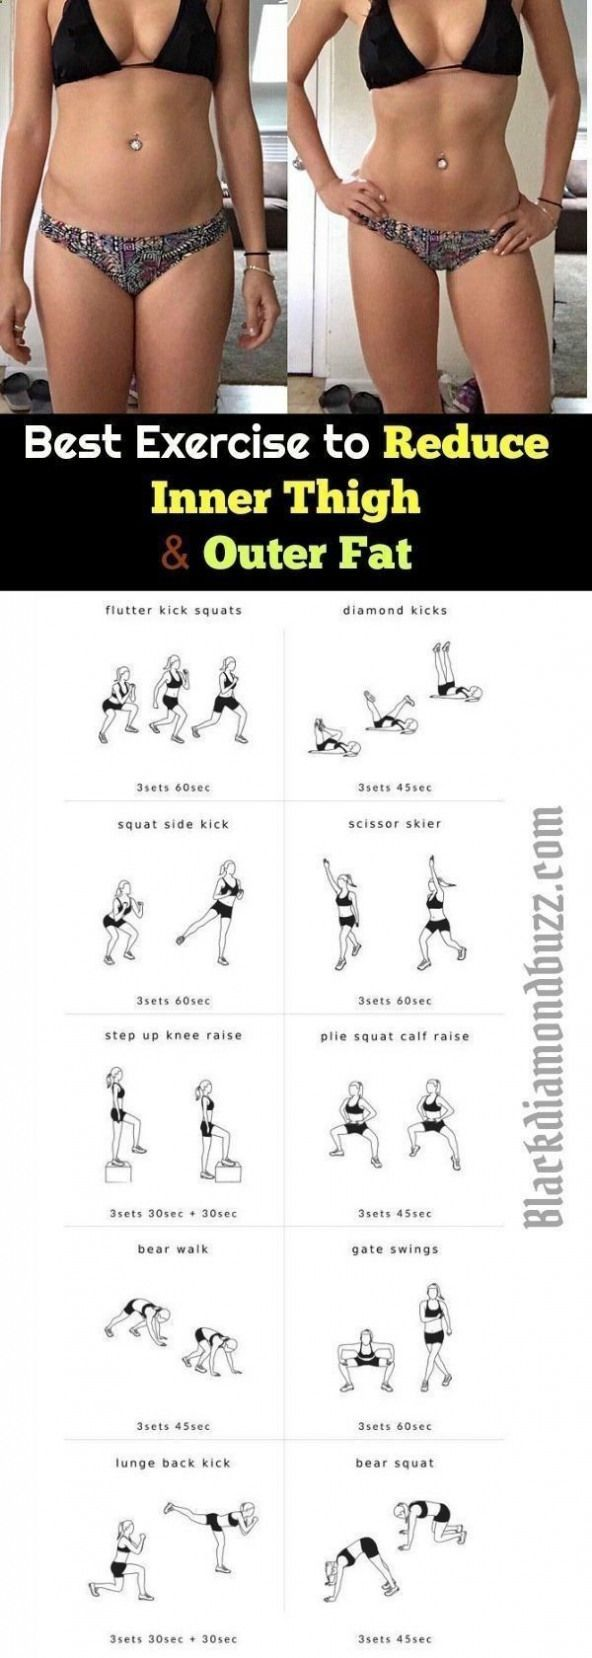 Belly Fat Workout - Fat Fast Shrinking Signal Diet-Recipes Best Exercise to Reduce Inner Thigh and Outer Fat Fast in a Week: In the exercise you will learn how to get rid of that suborn thigh fat and hips fat at home by eva.ritz  Follow PowerRecipes For #Howtoburnbellyfatinaweek -   18 fitness workouts thighs ideas